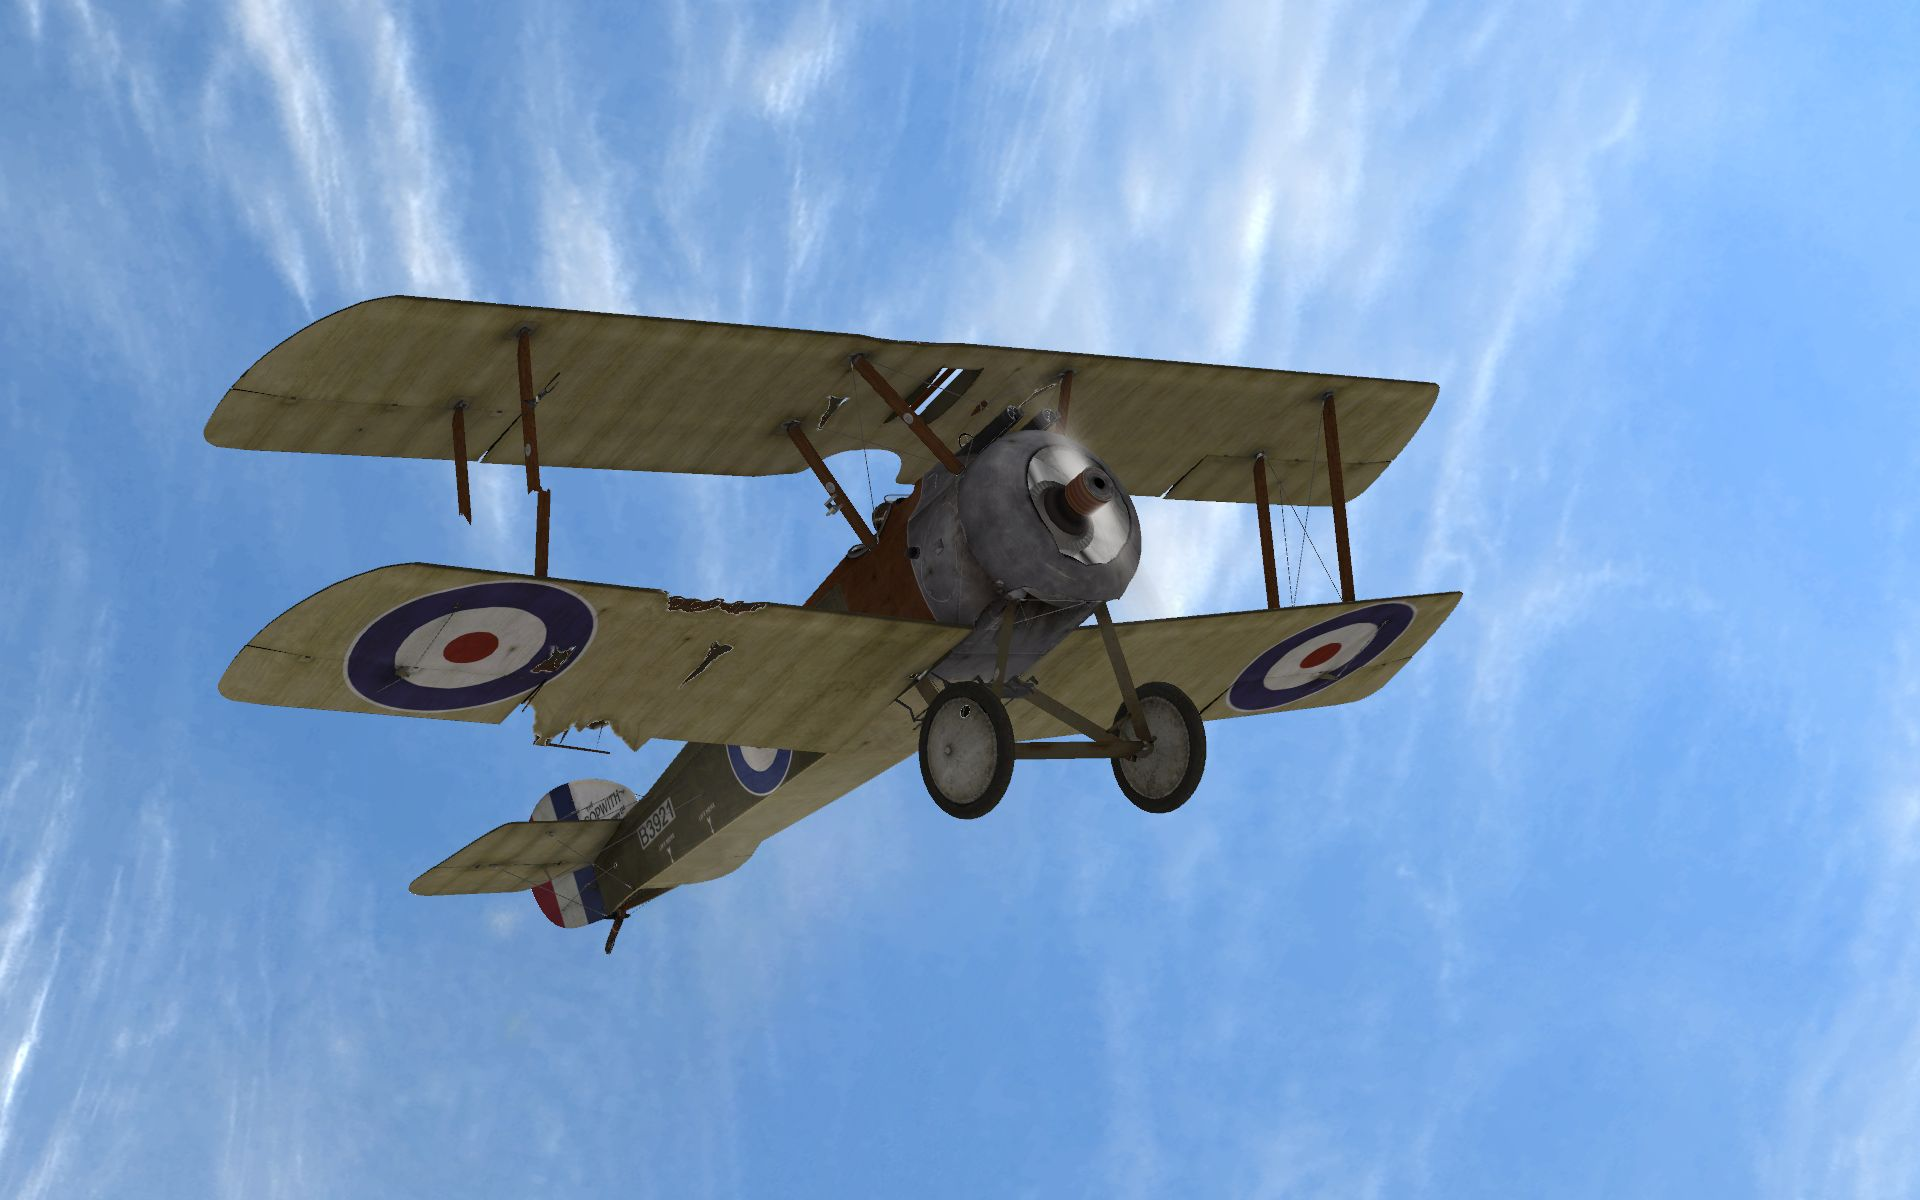 Rise Of Flight - Sopwith Camel F.I with wing damage - Screenshot by Gremlin (28-Feb-2010)